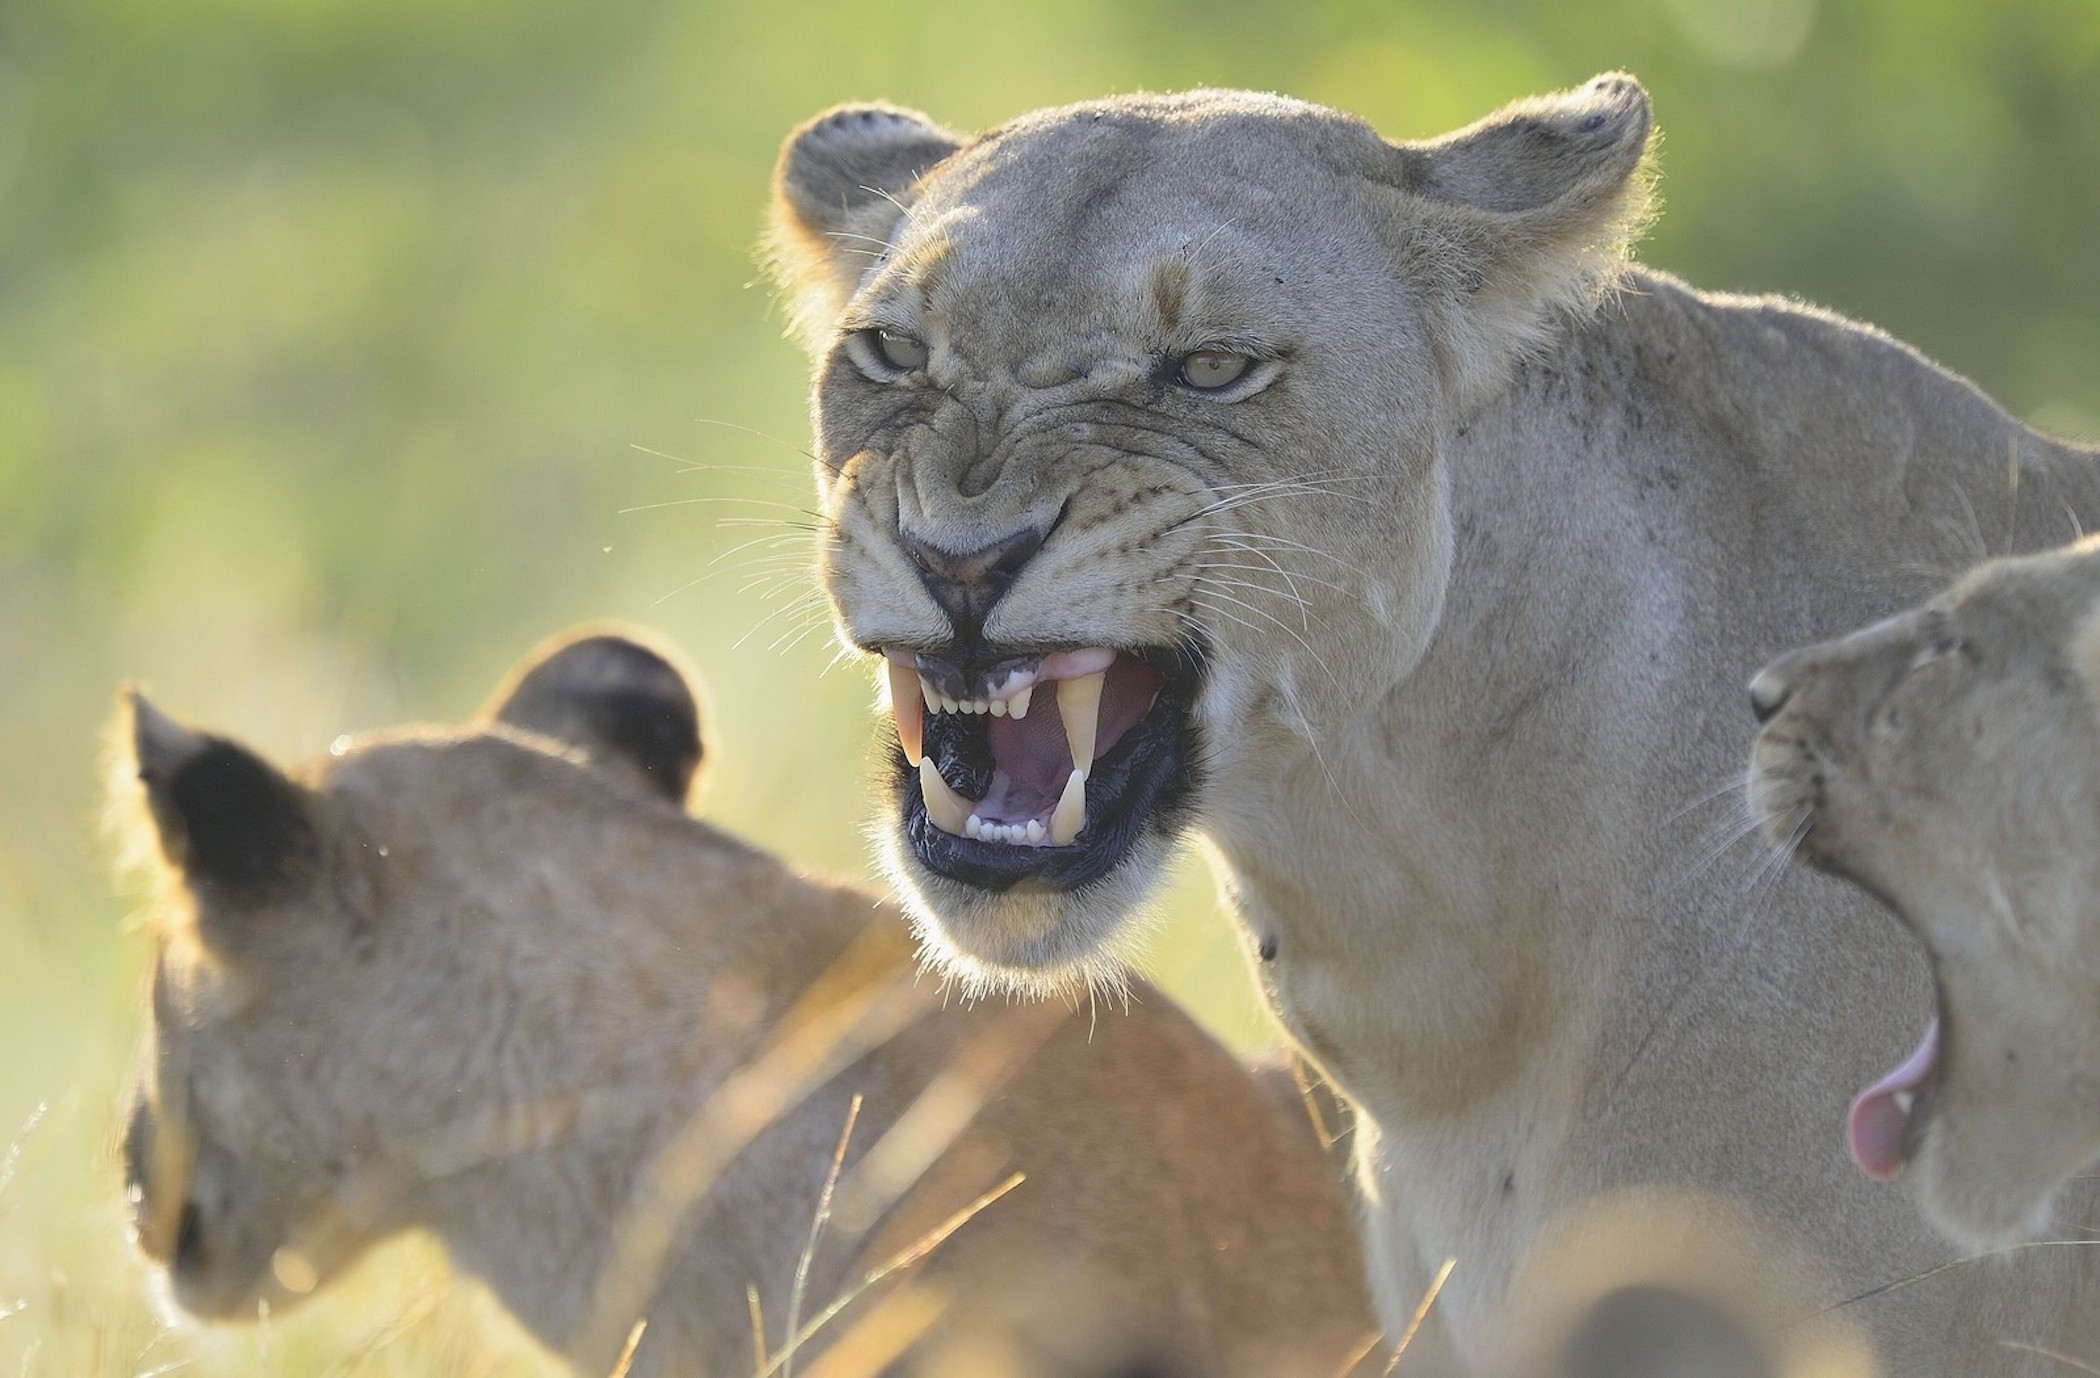 Angry Lioness Wallpaper - Free Lioness HD Downloads